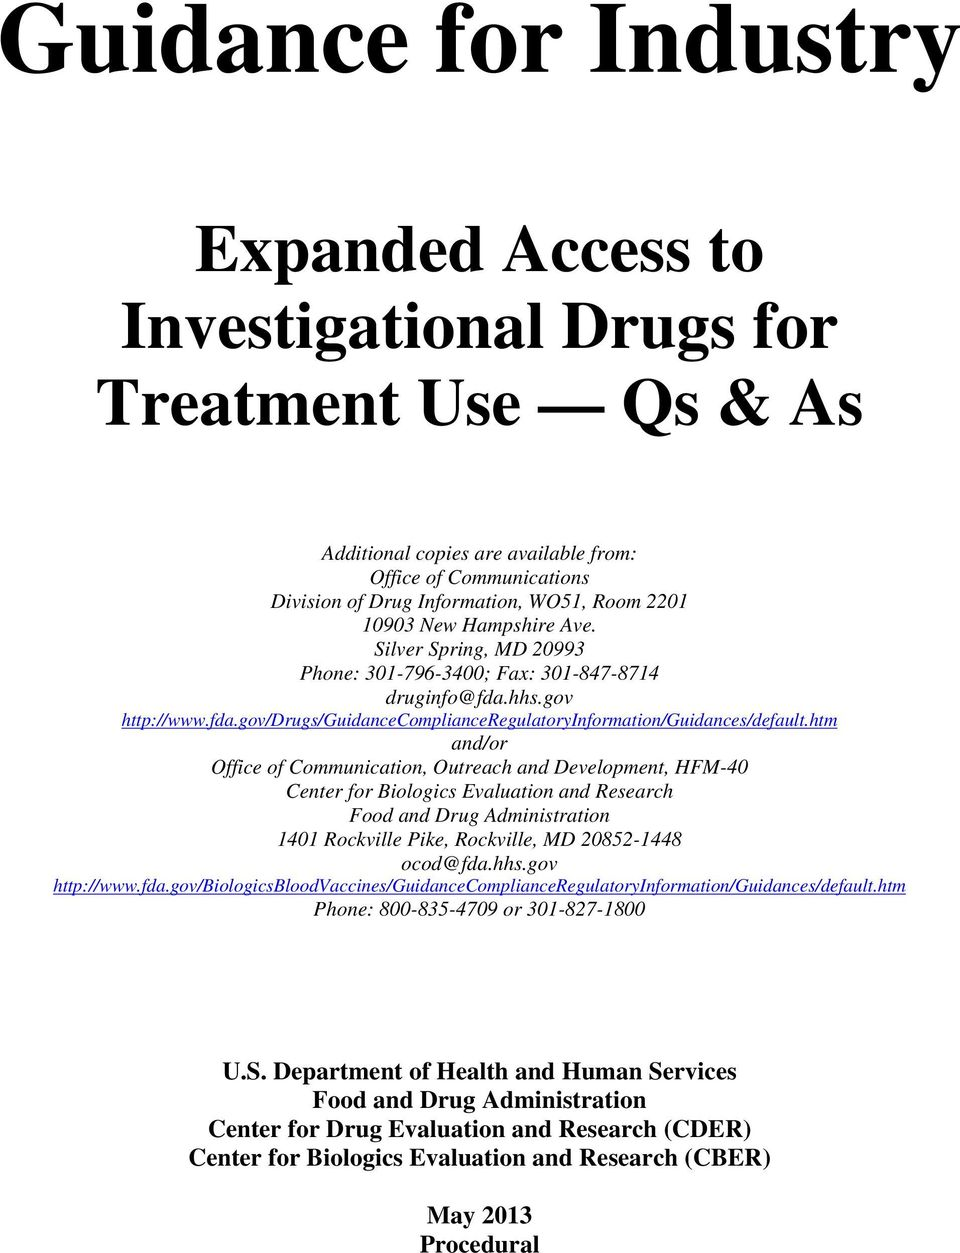 htm and/or Office of Communication, Outreach and Development, HFM-40 Center for Biologics Evaluation and Research Food and Drug Administration 1401 Rockville Pike, Rockville, MD 20852-1448 ocod@fda.